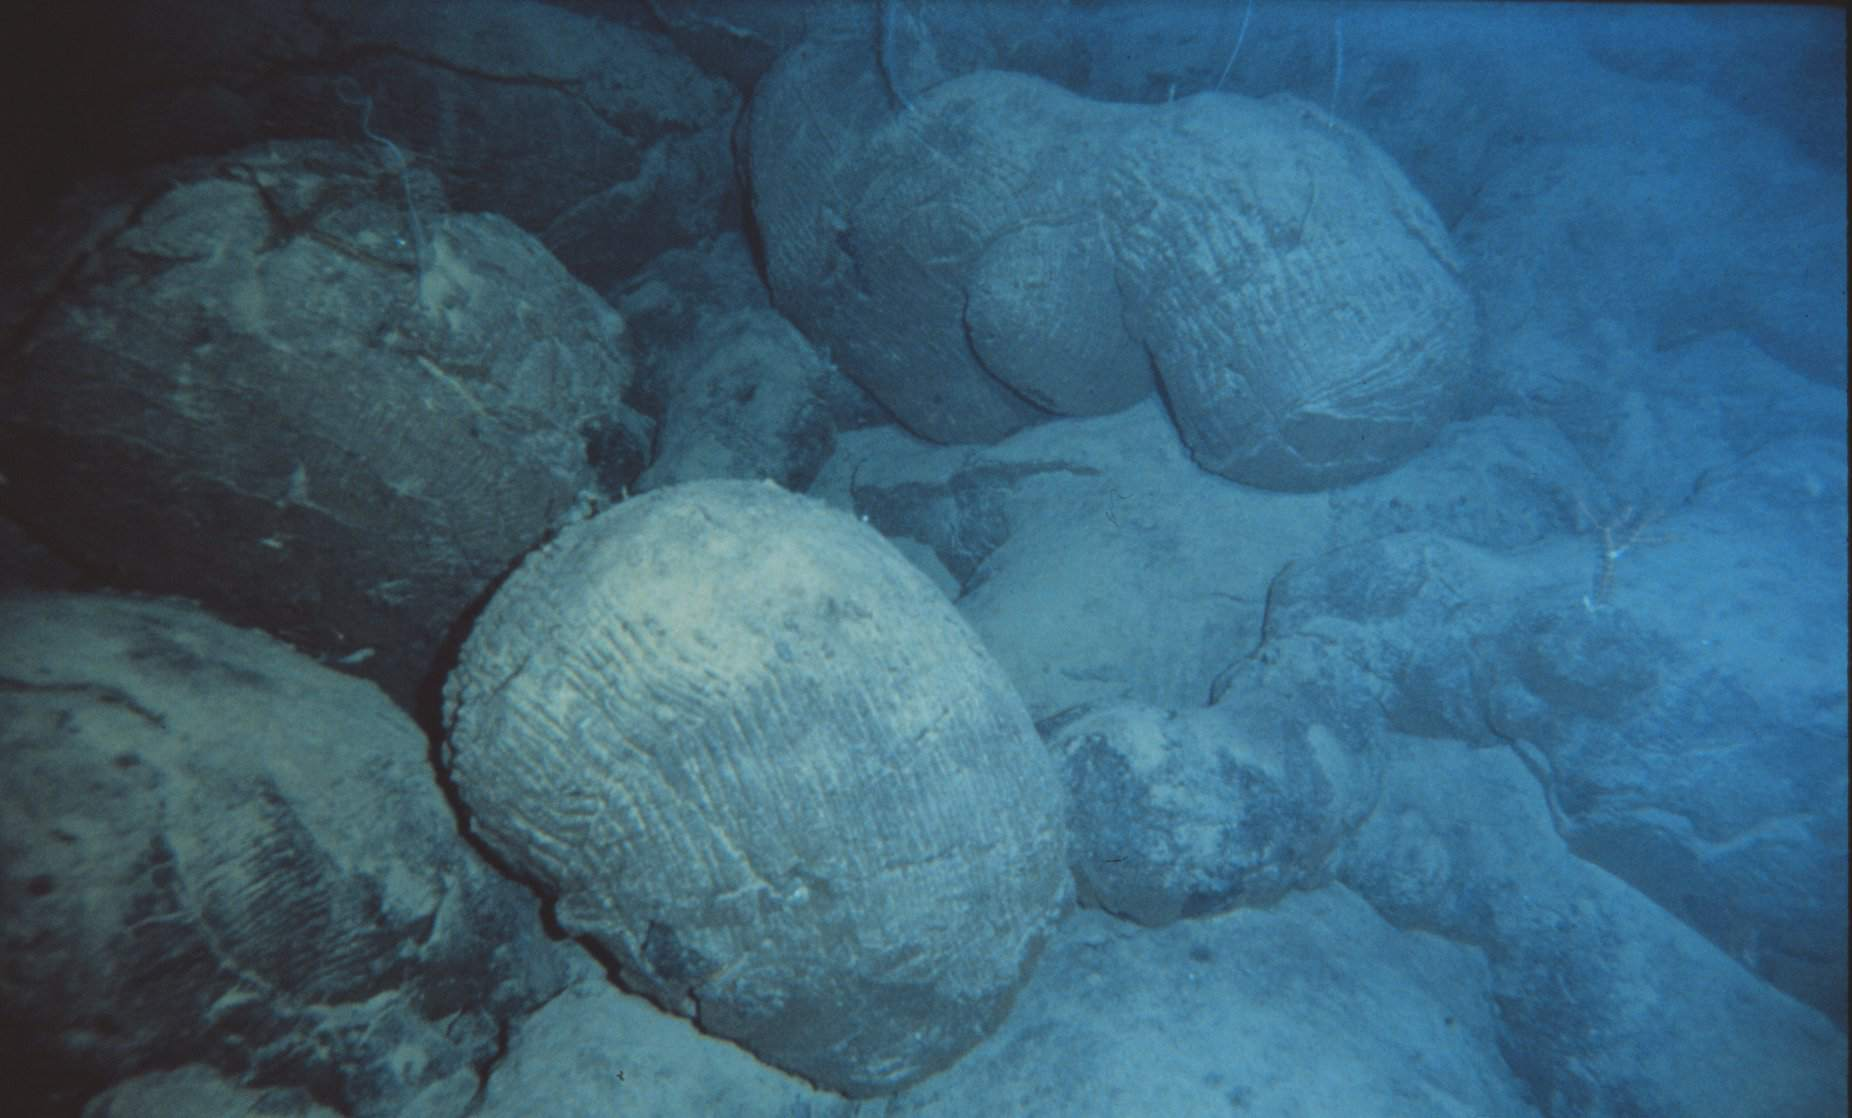 Pillow lavas under the water.